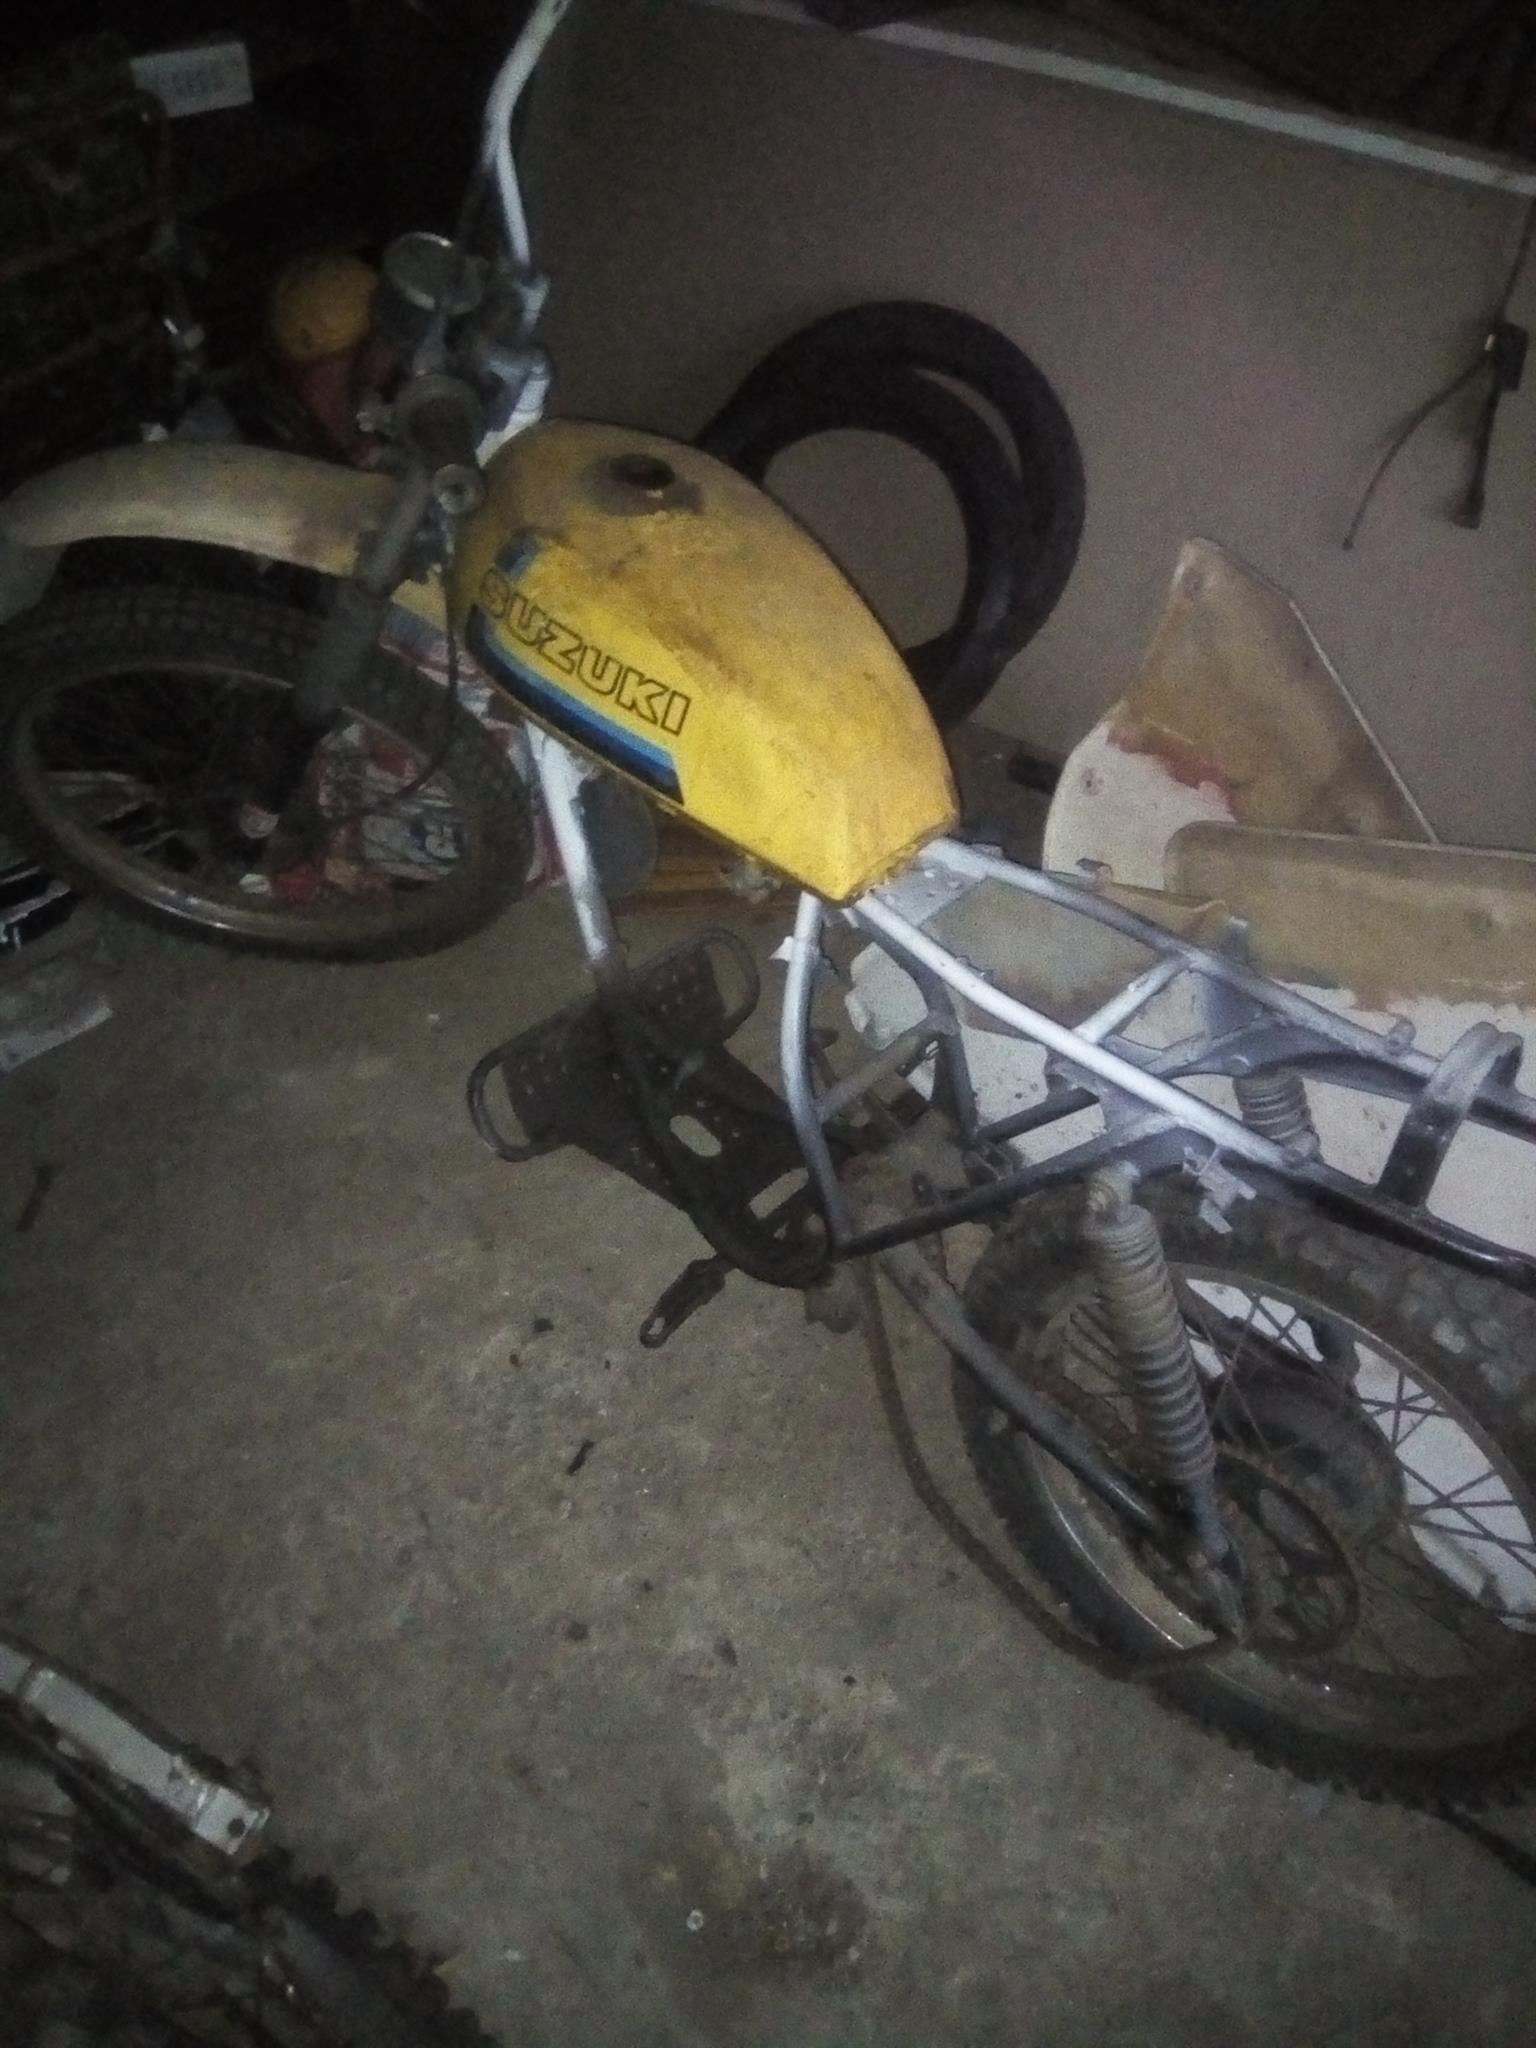 Suzuki ts frame and other spares